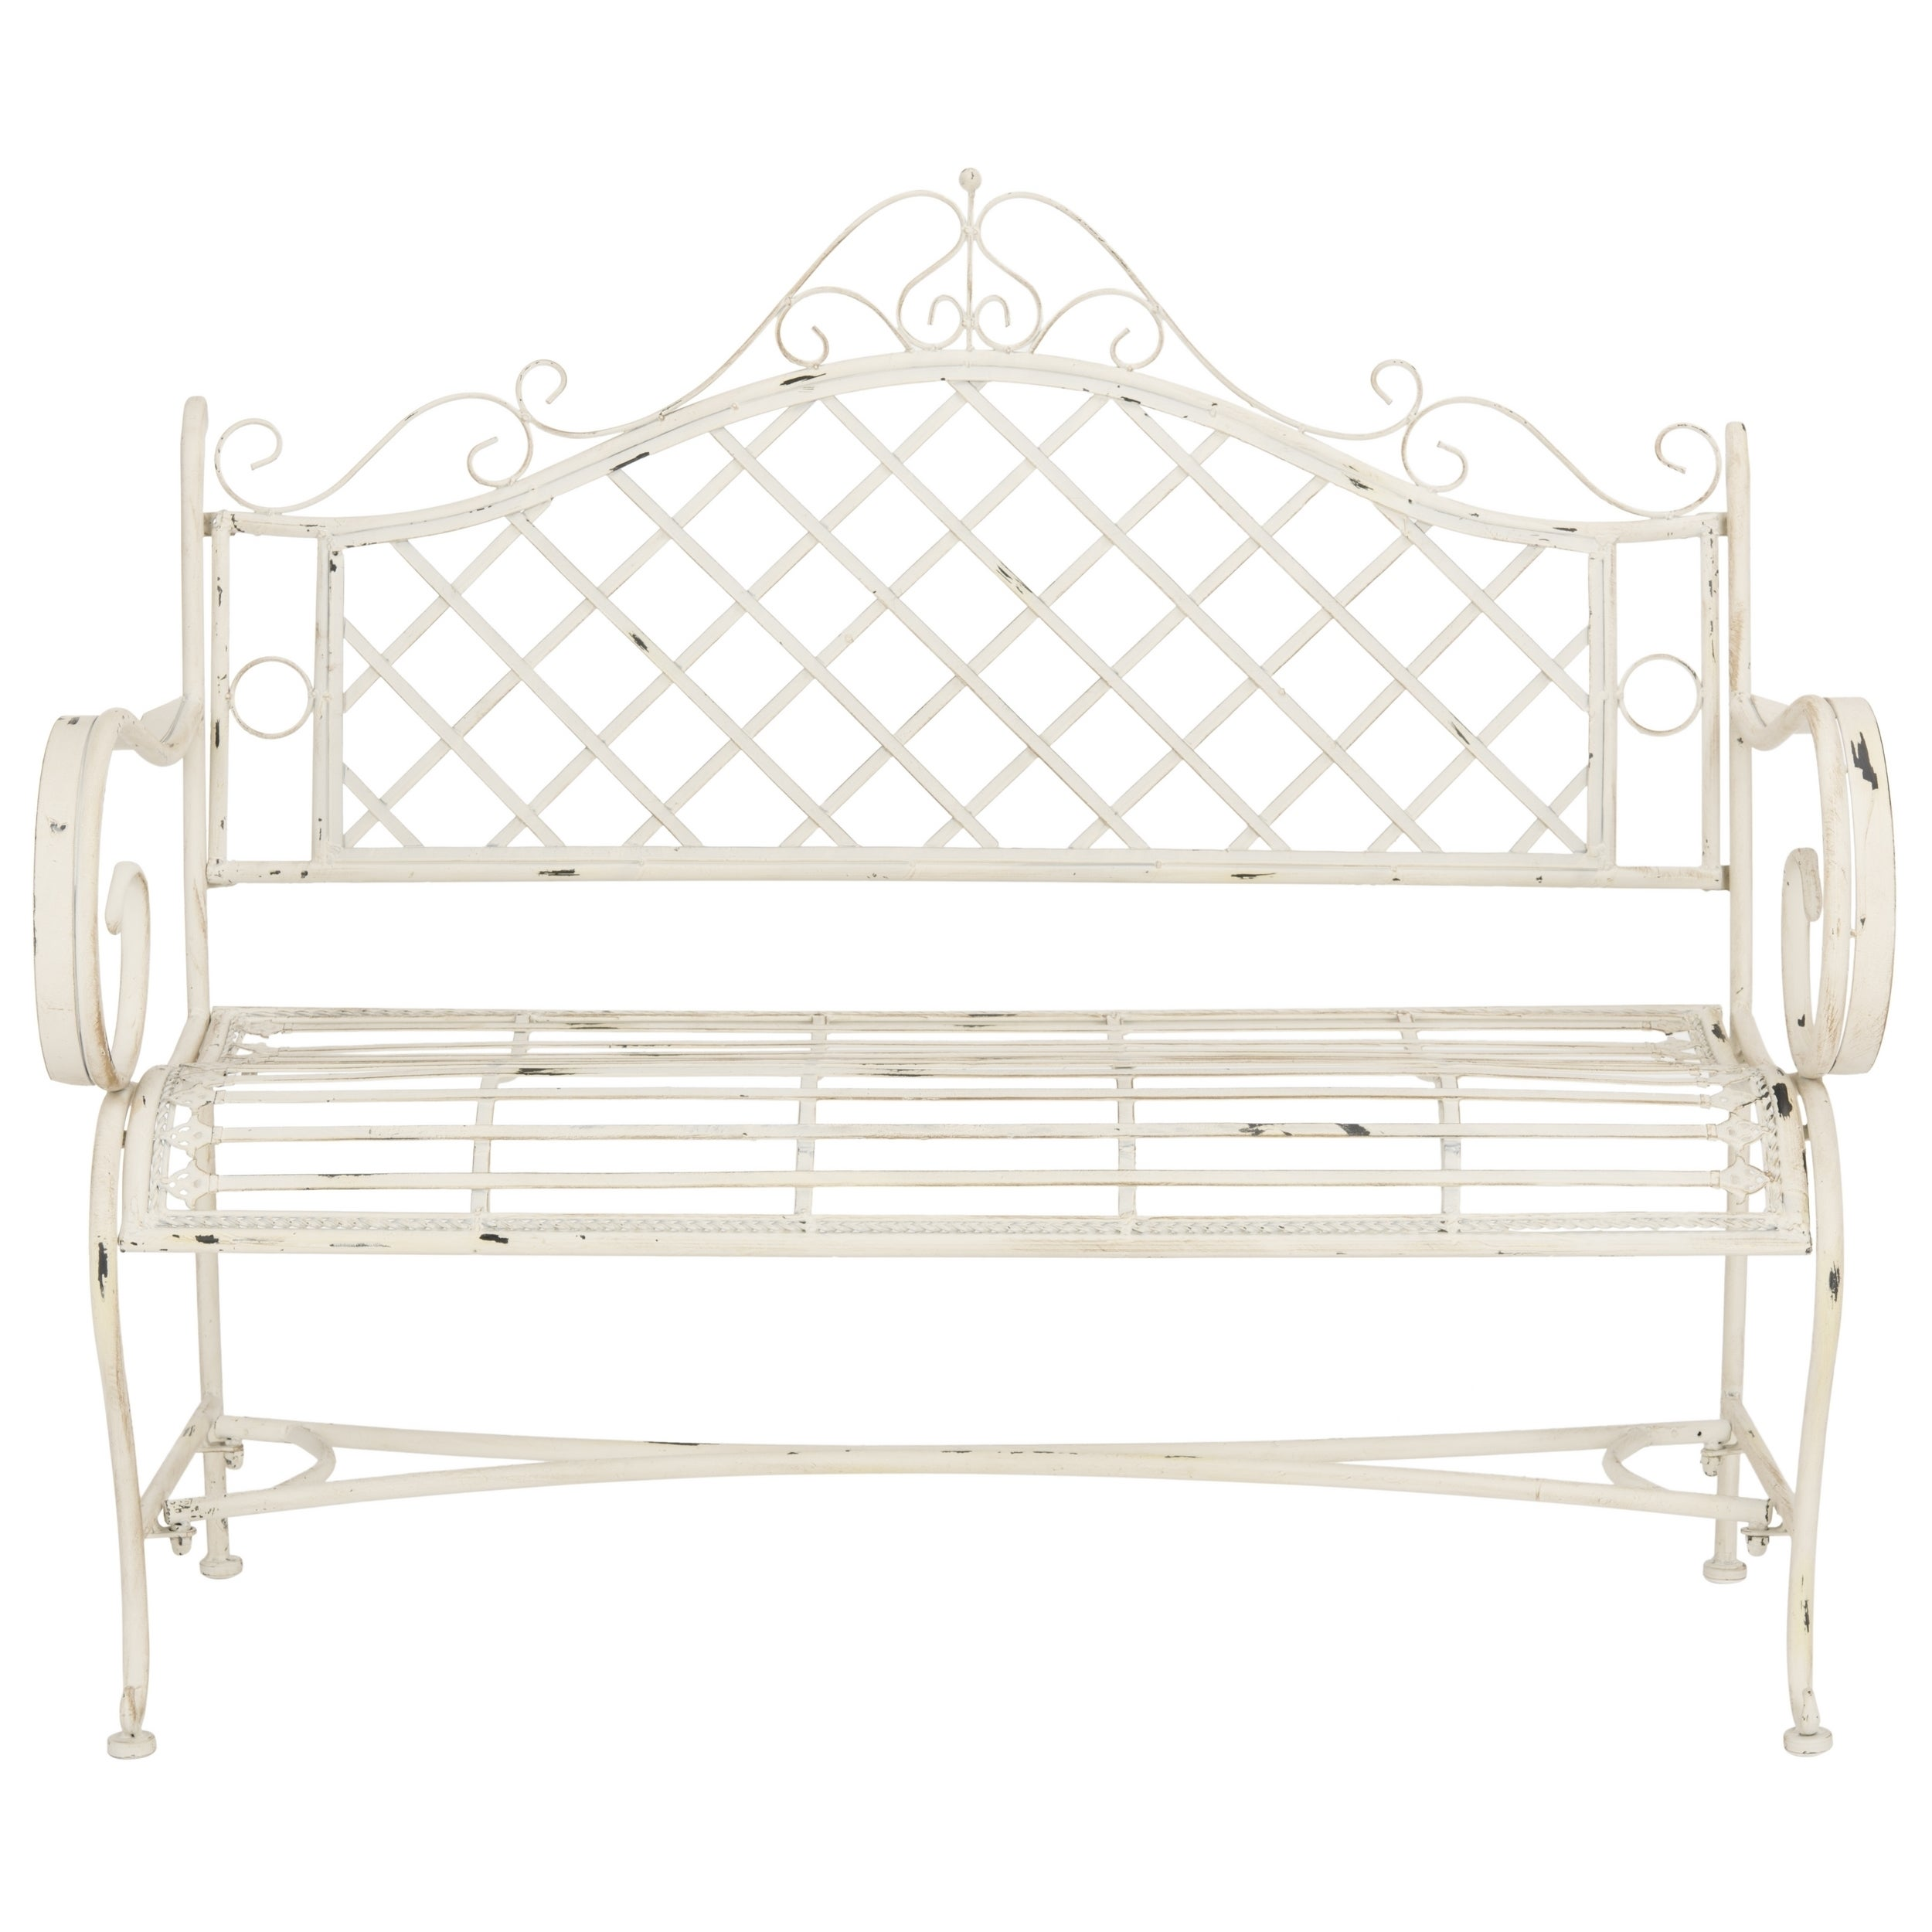 set cast home bench design iron gallery furniture decoration garden benches outdoor rectangle minimalist antique chairs furnitures white